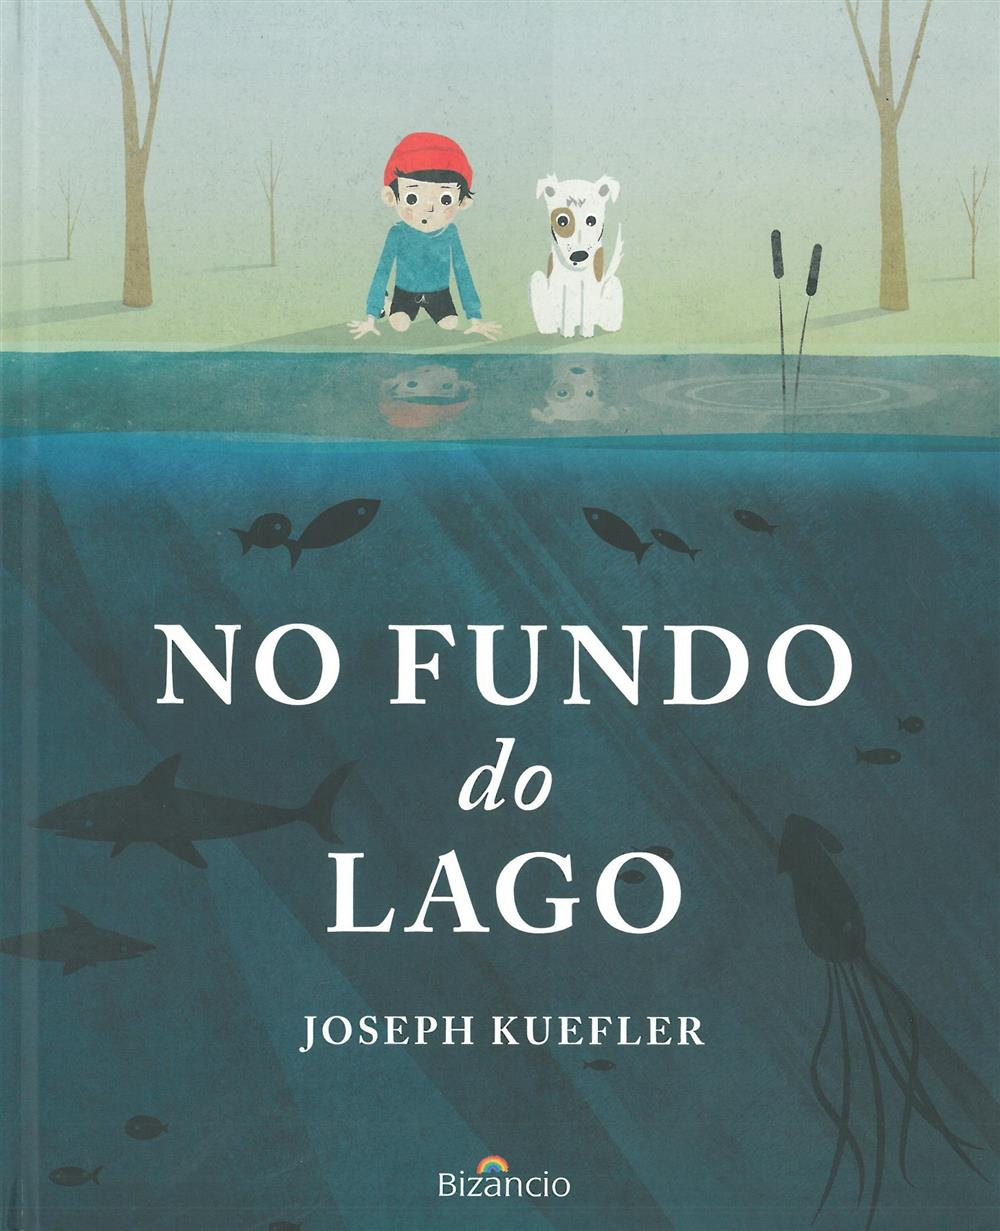 No fundo do lago_.jpg